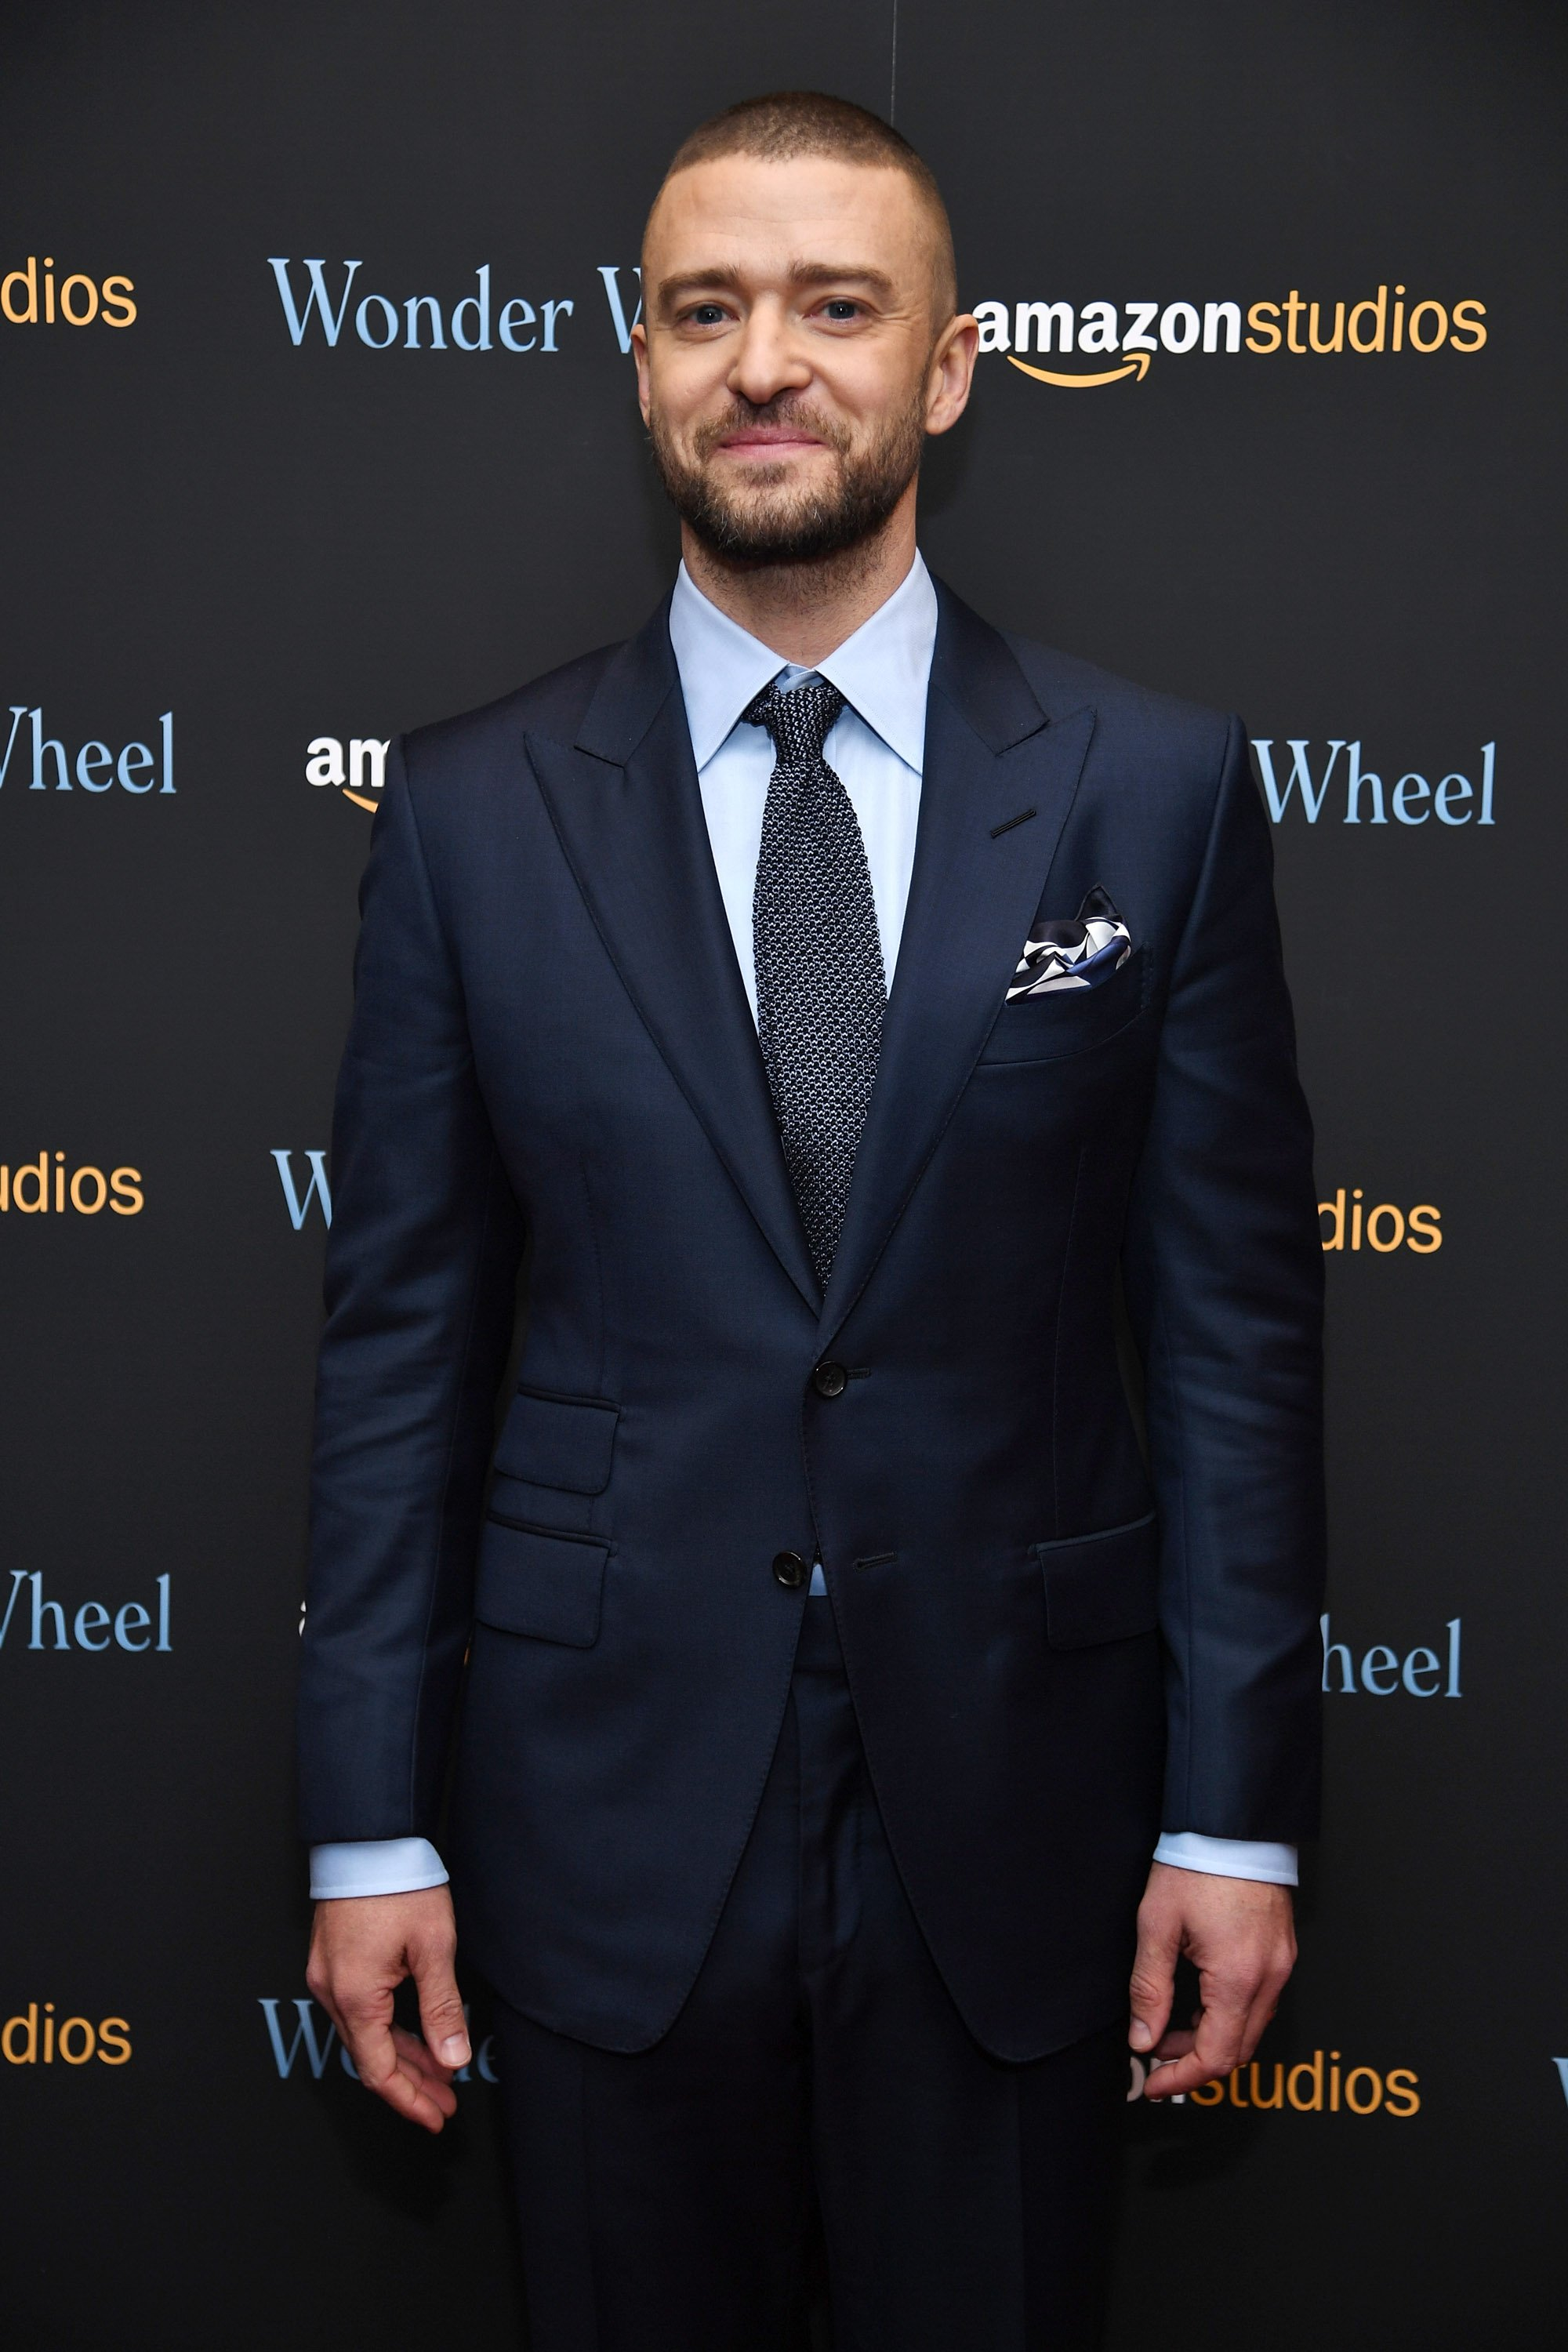 """Justin Timberlake attends the """"Wonder Wheel"""" screening on November 14, 2017, in New York City.   Source: Getty Images."""